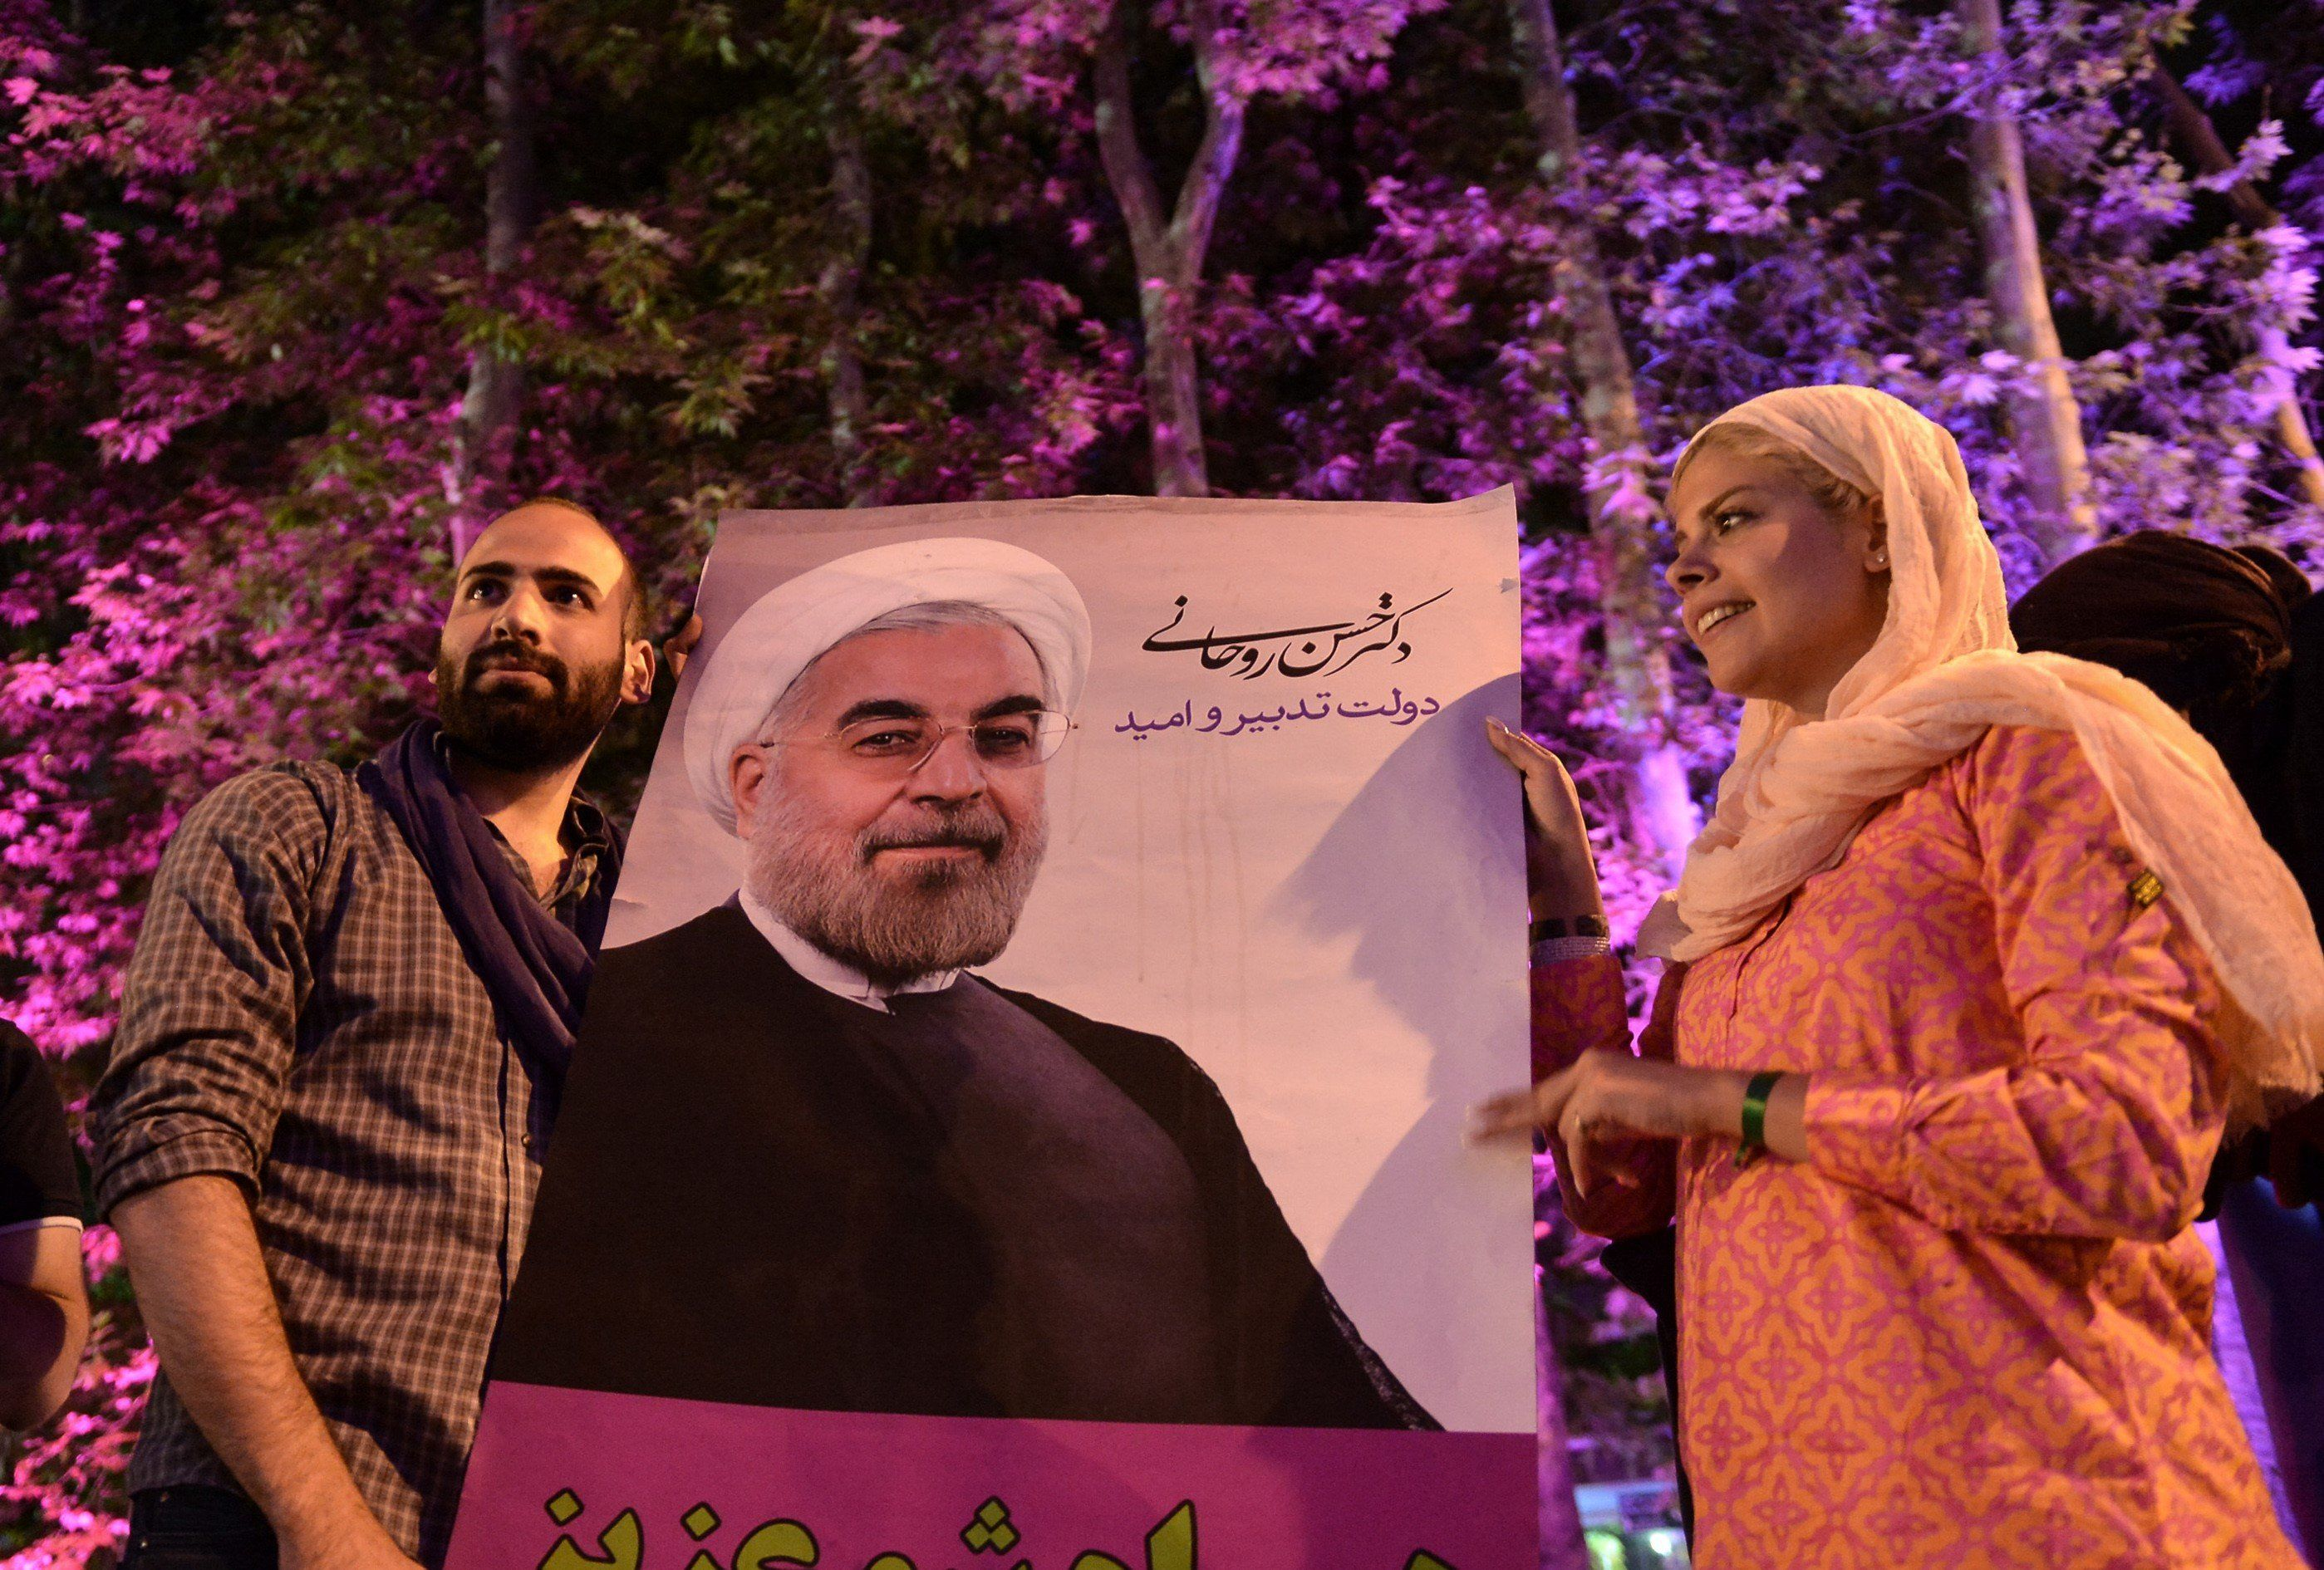 TEHRAN, IRAN- MAY 20: Supporters of President Hassan Rouhani celebrate after the results of the Iran vote were announced, in Tehran, Iran on May 20, 2017.   (Photo by Fatemeh Bahrami/Anadolu Agency/Getty Images)